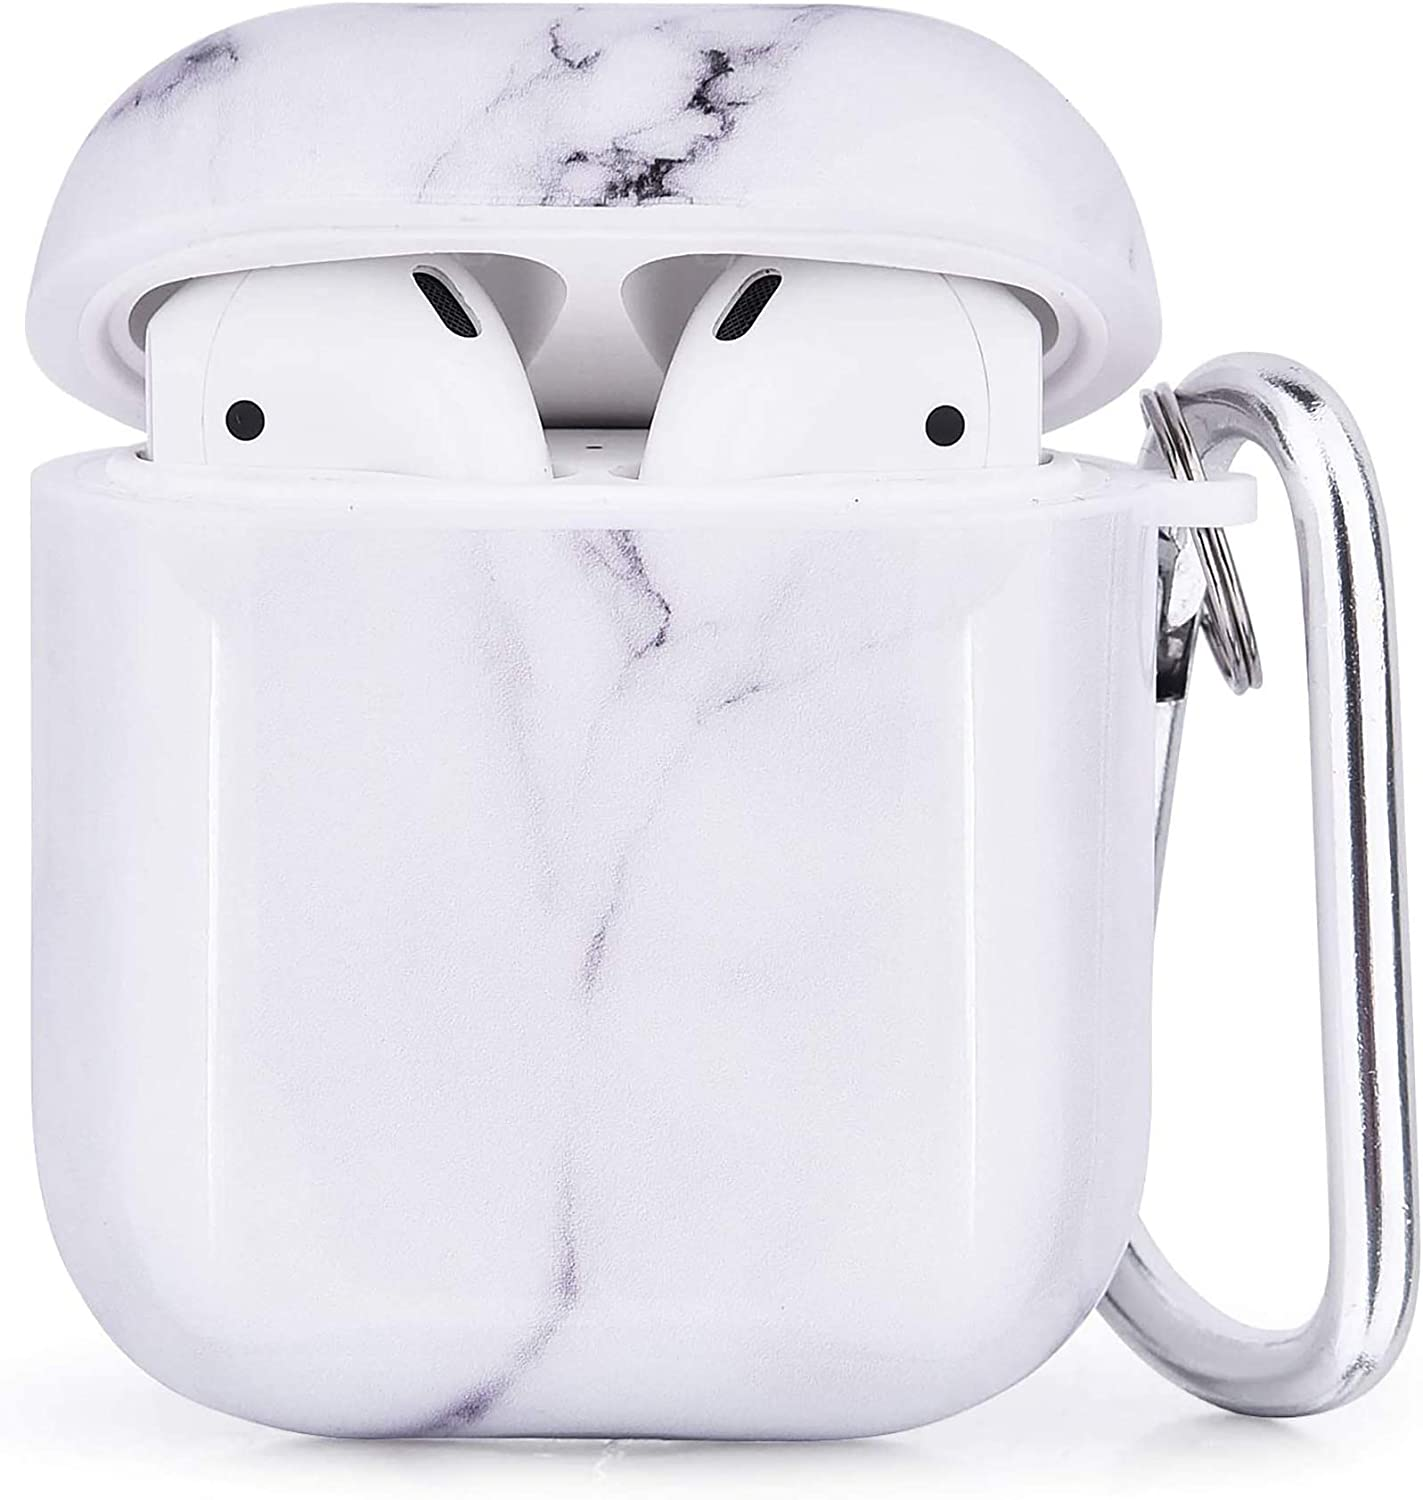 CAGOS Compatible with Airpods Case, 3 in 1 Cute Marble Accessories Protective Hard Case Cover Portable & Shockproof Women Girls Men with Keychain/Strap/Earhooks for Airpods 2/1 Charging Case - White